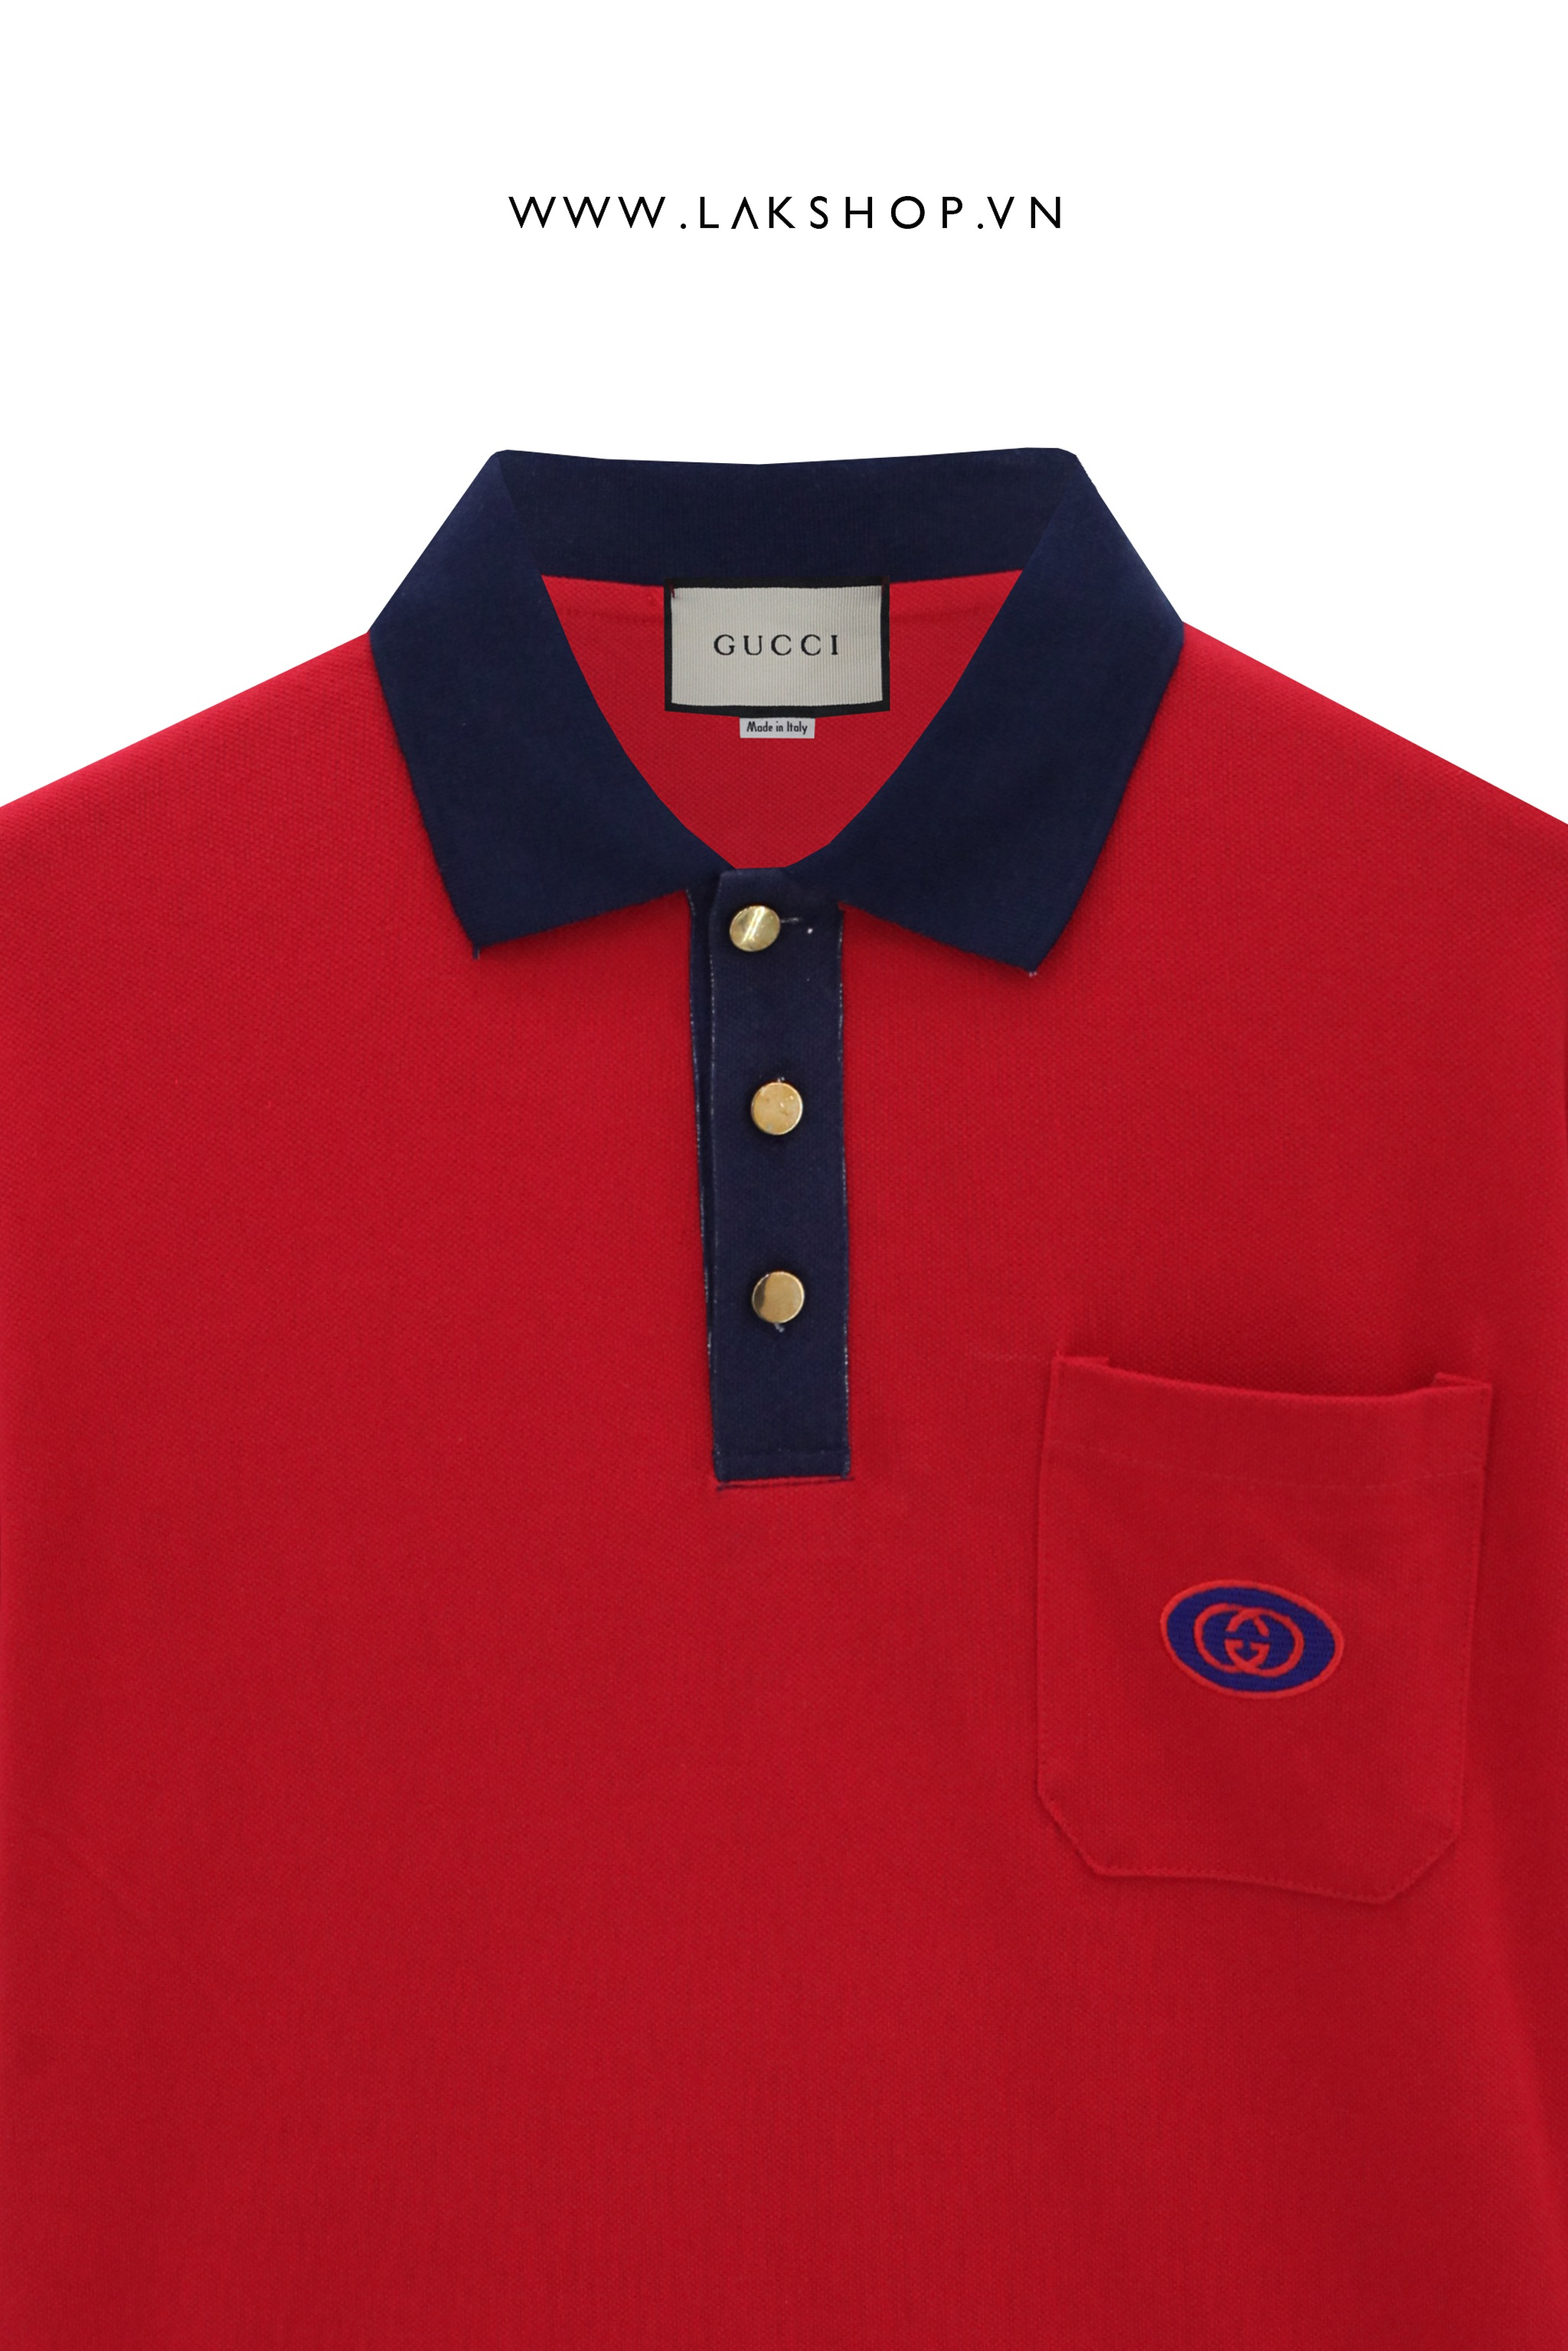 Gucci GG-Embroidered Pique Red Polo Shirt